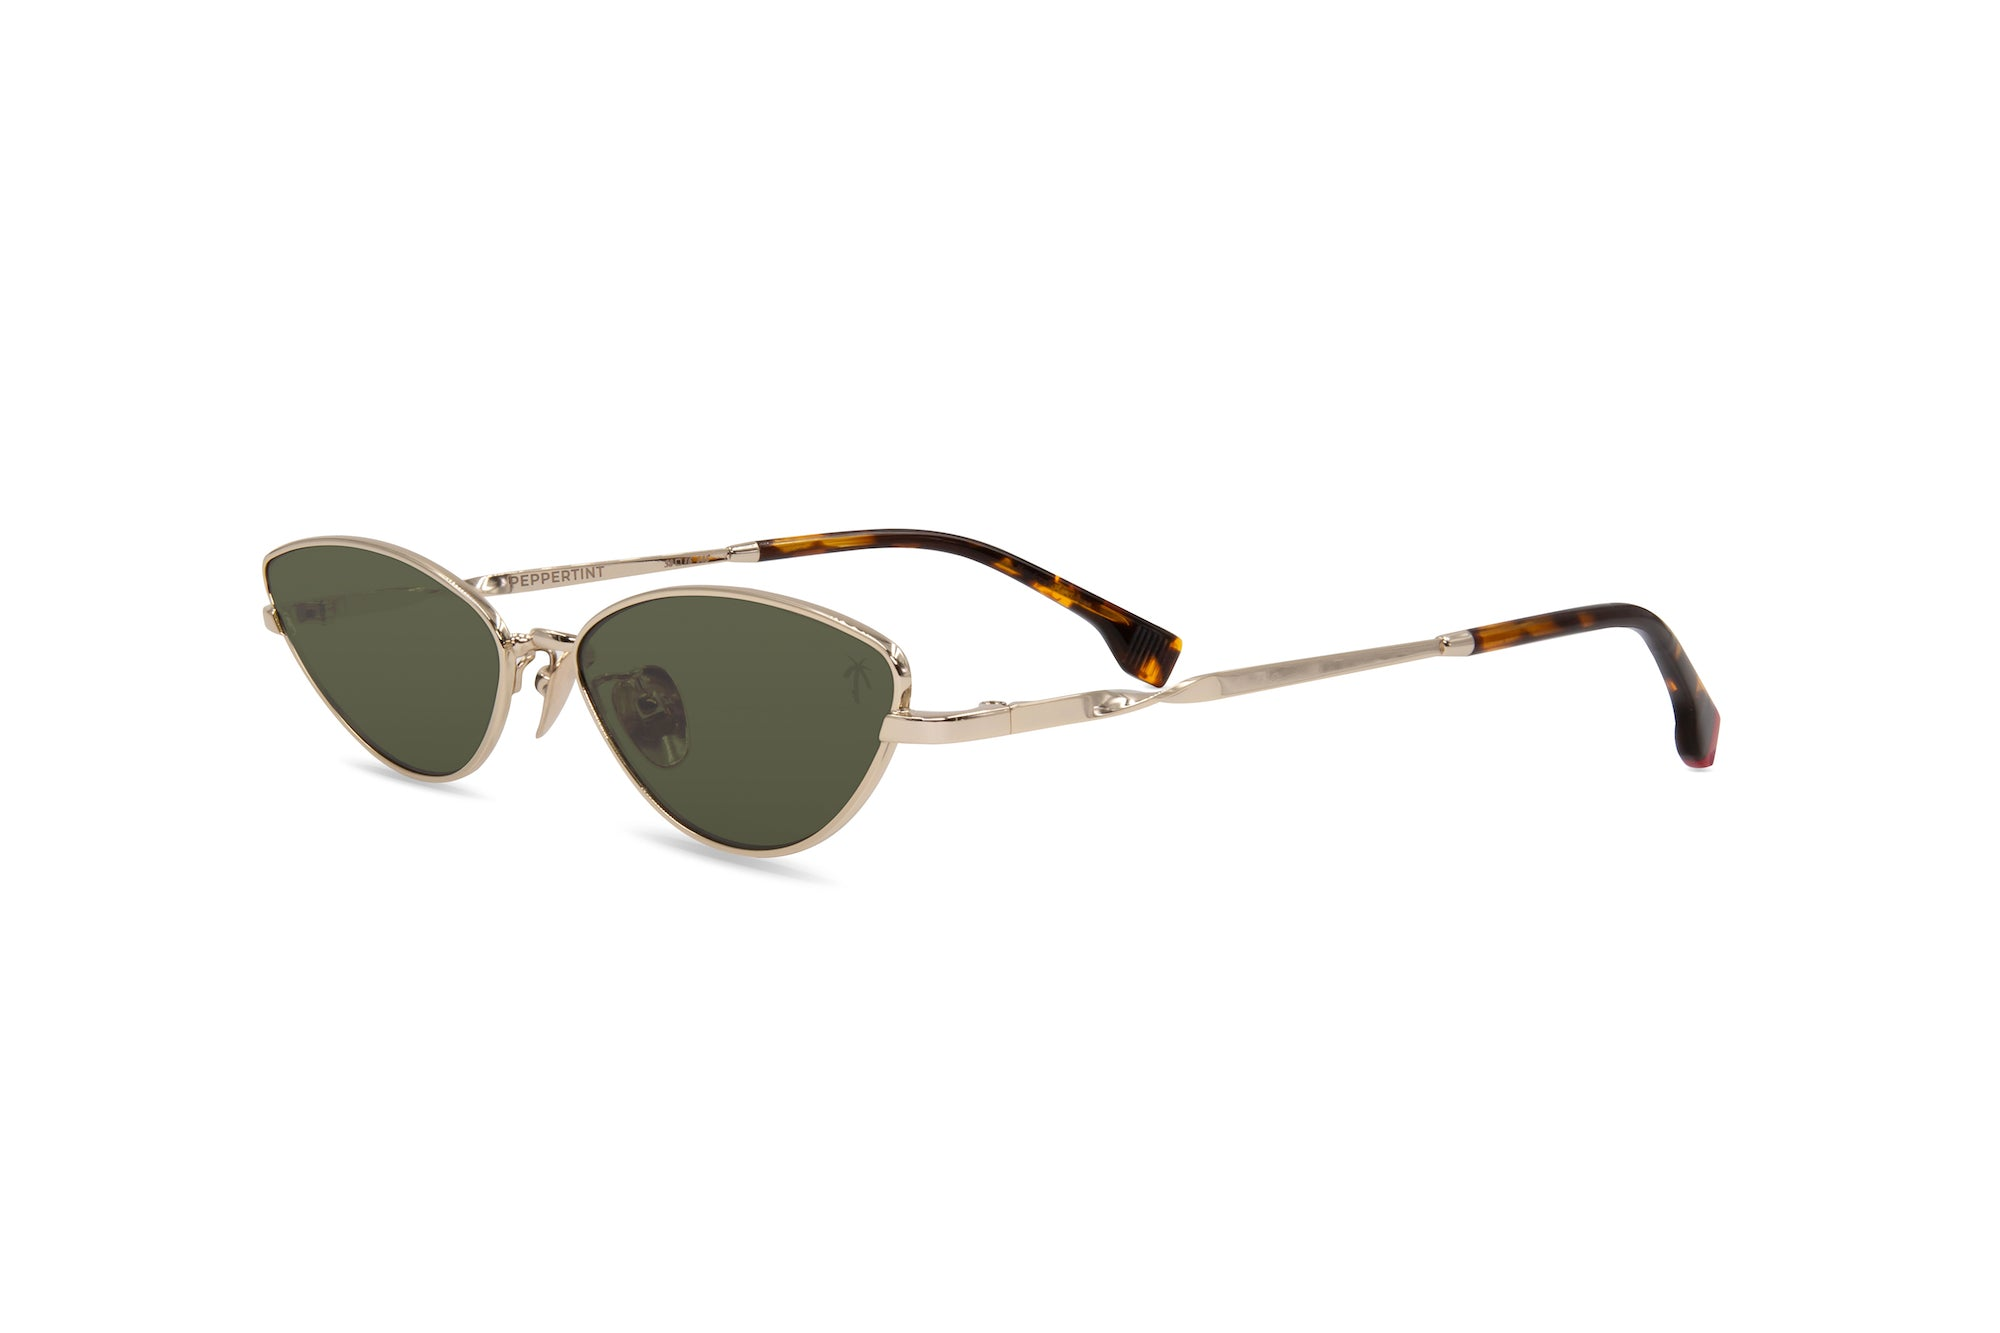 Alameda in Olive Green - Peppertint - Designer sunglasses